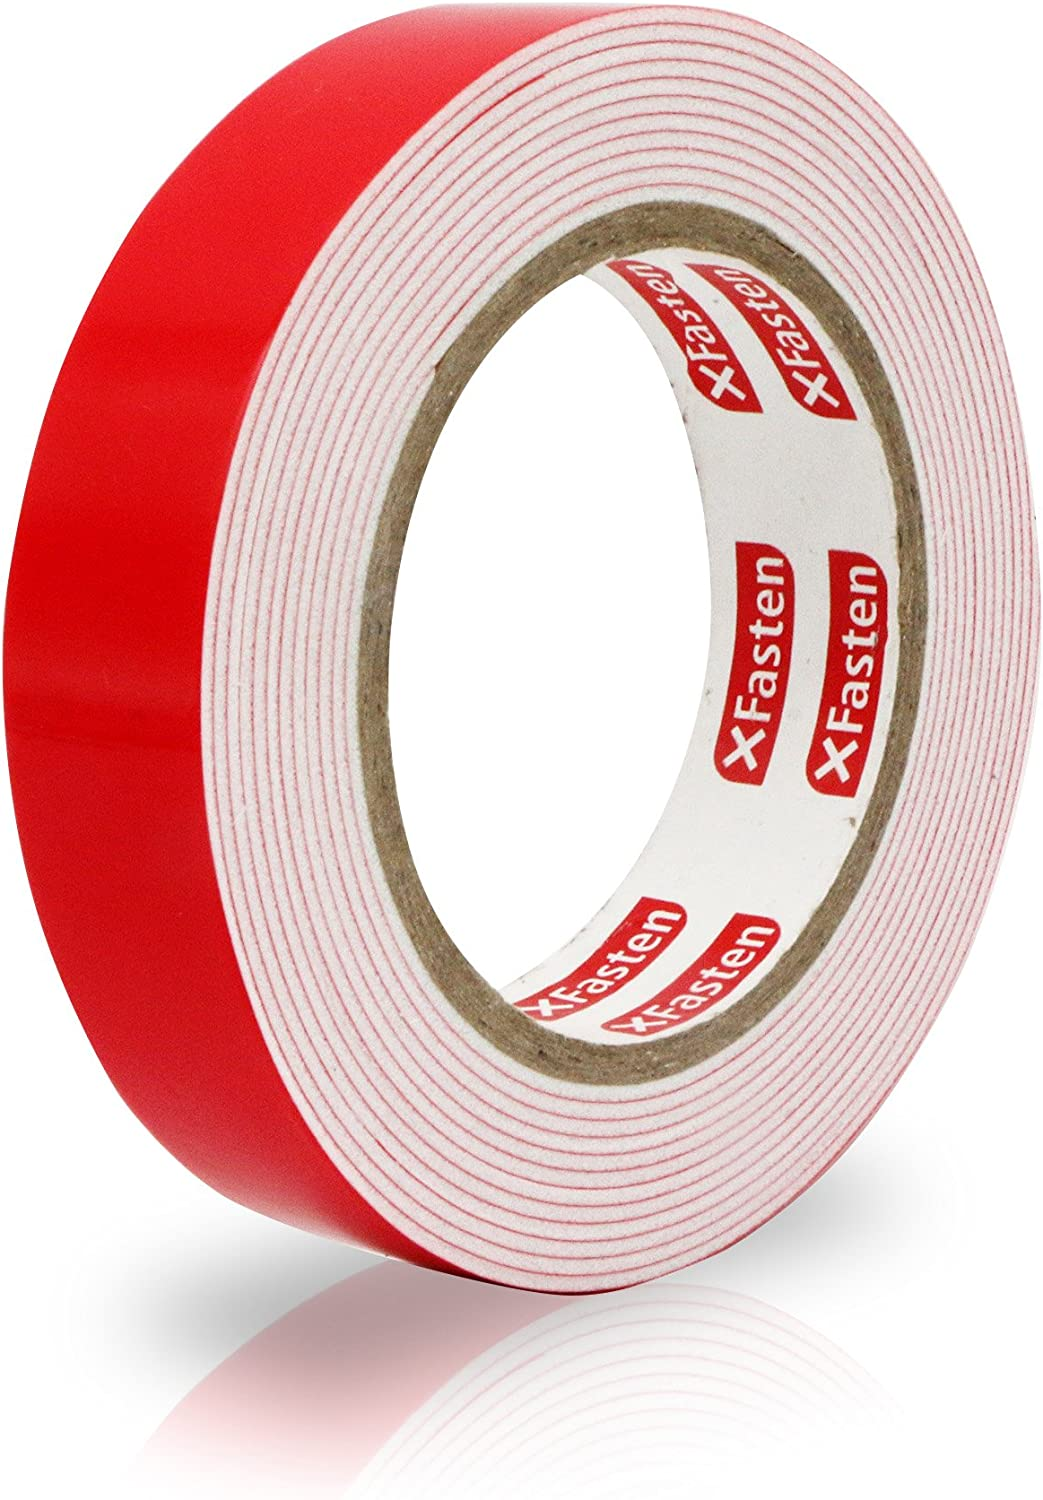 1//10 Rolls Double Sided Faced Super Strong Adhesive Tape For Office SupplieRSDE